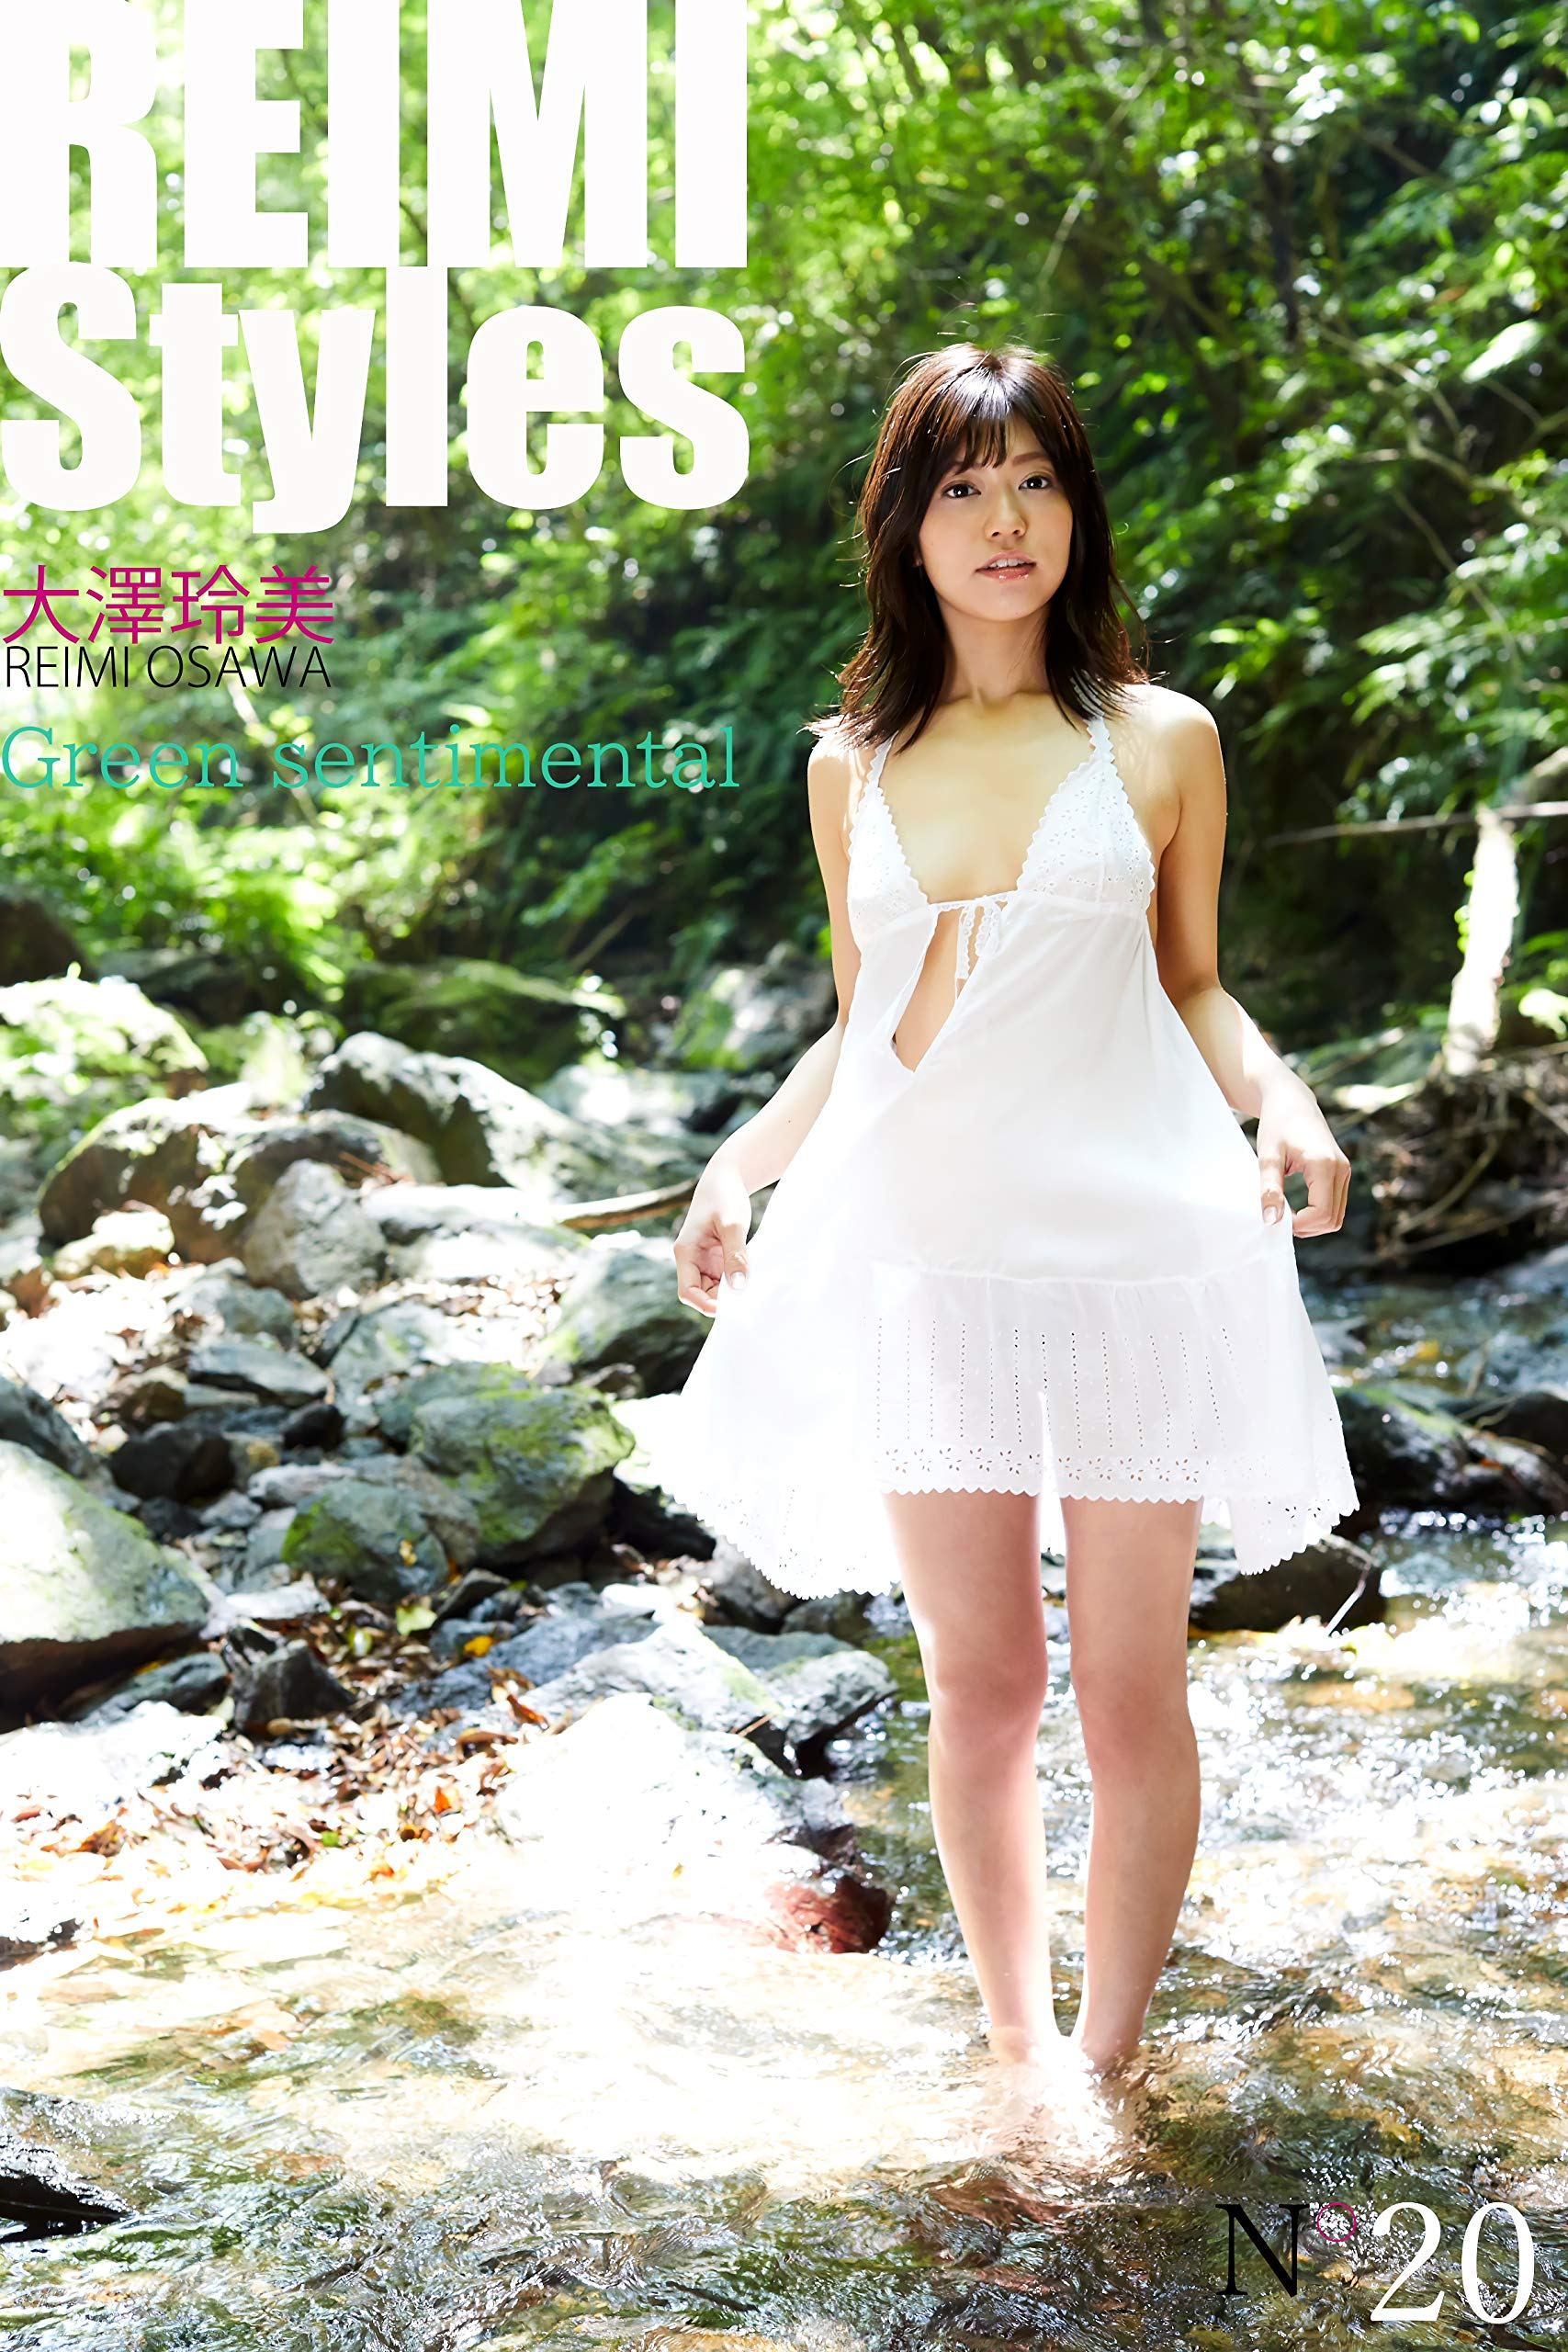 大澤玲美 REIMI Styles Green sentimental: 470pages or more